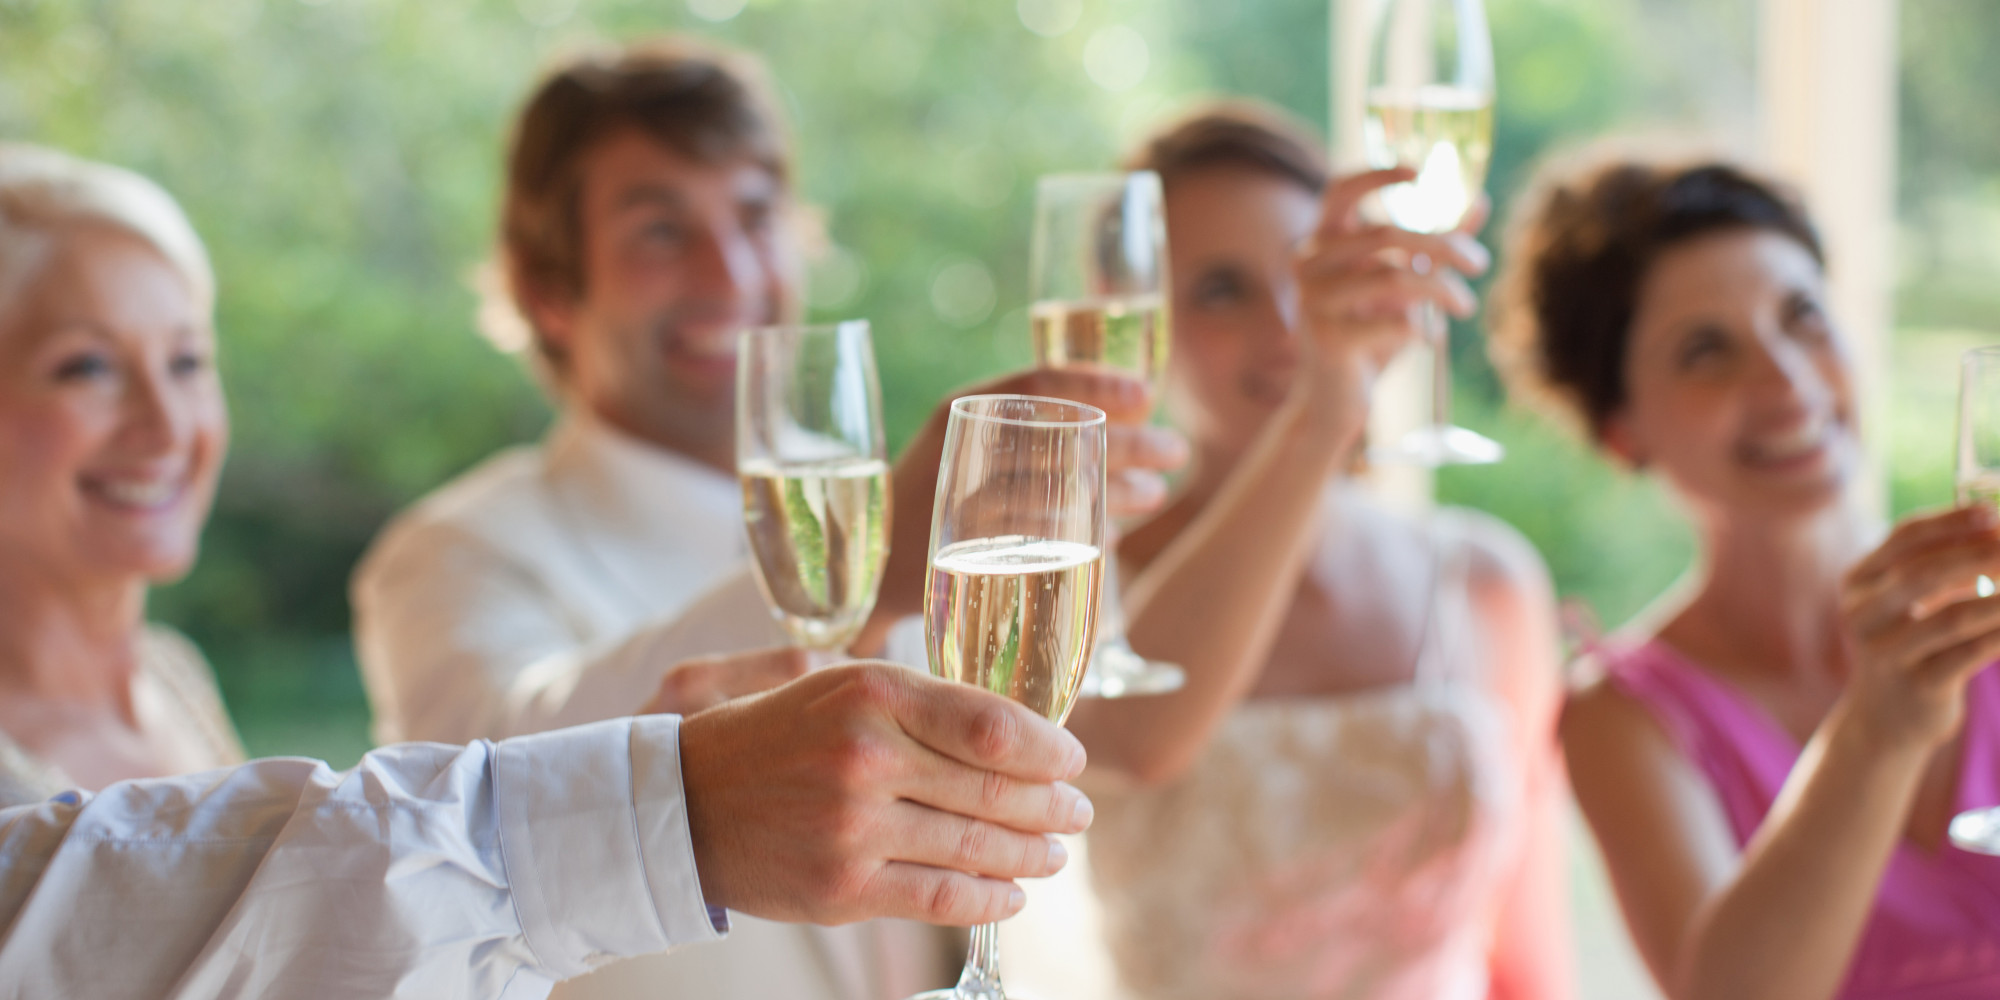 Wedding Gift List Rude : Sticky Wedding Situation: Asking For Cash Is Insulting, Tacky And Rude ...